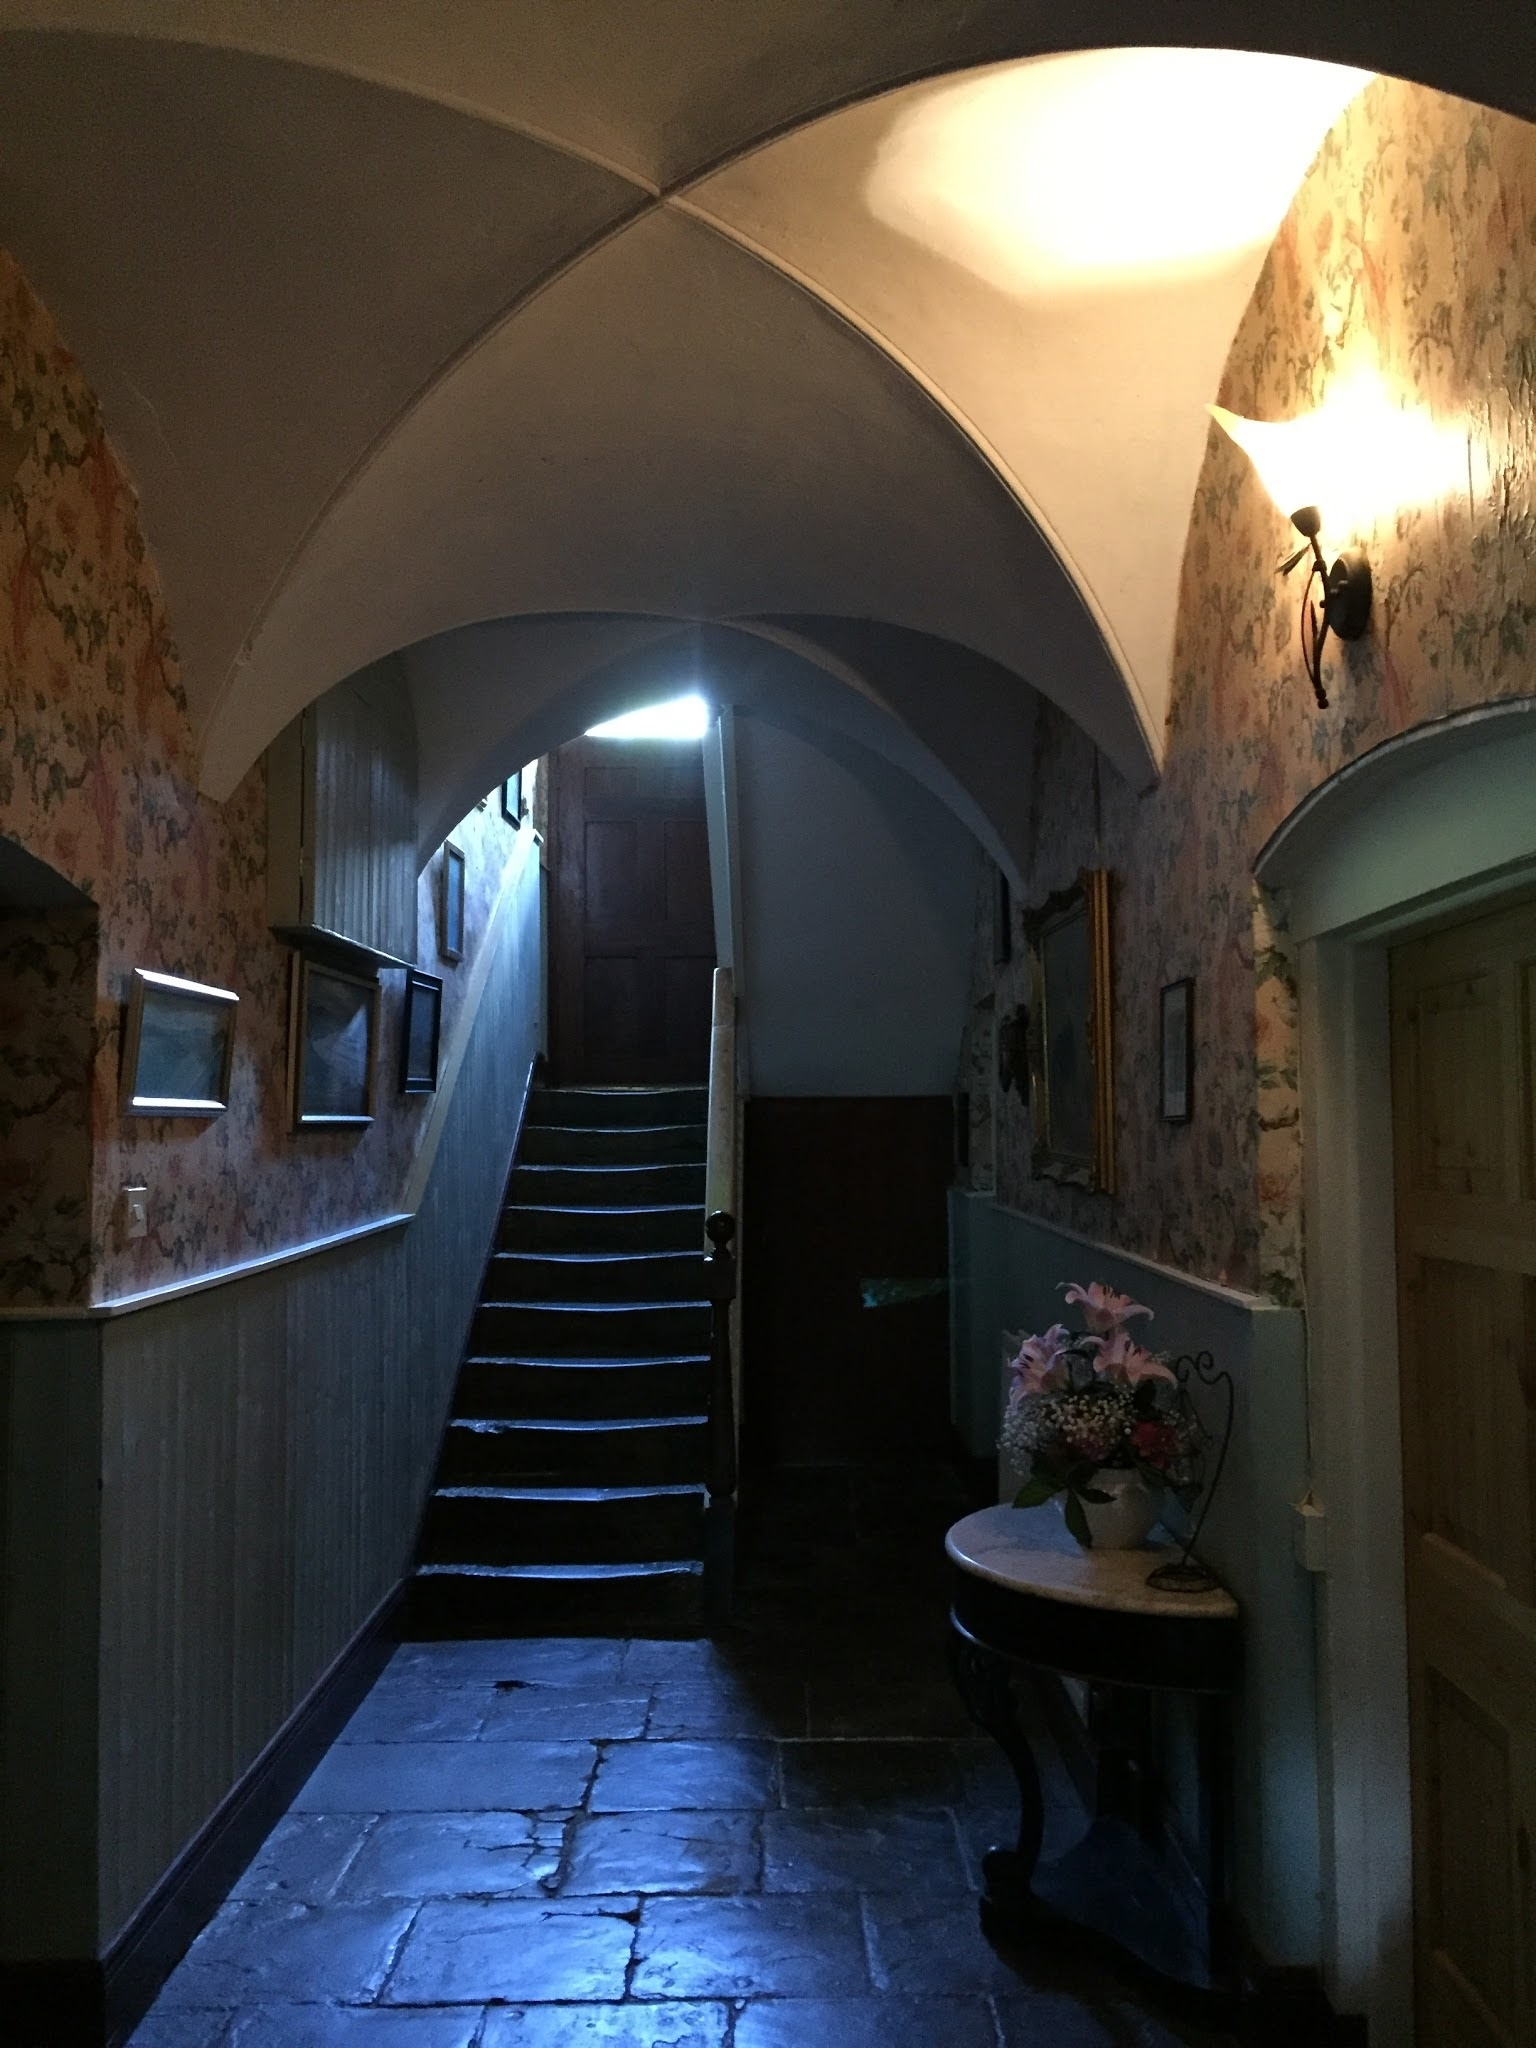 3-IGS-Limerick-Chapter-Trip-to-Ledwithstown-House-Sepember-2017.jpg#asset:7795